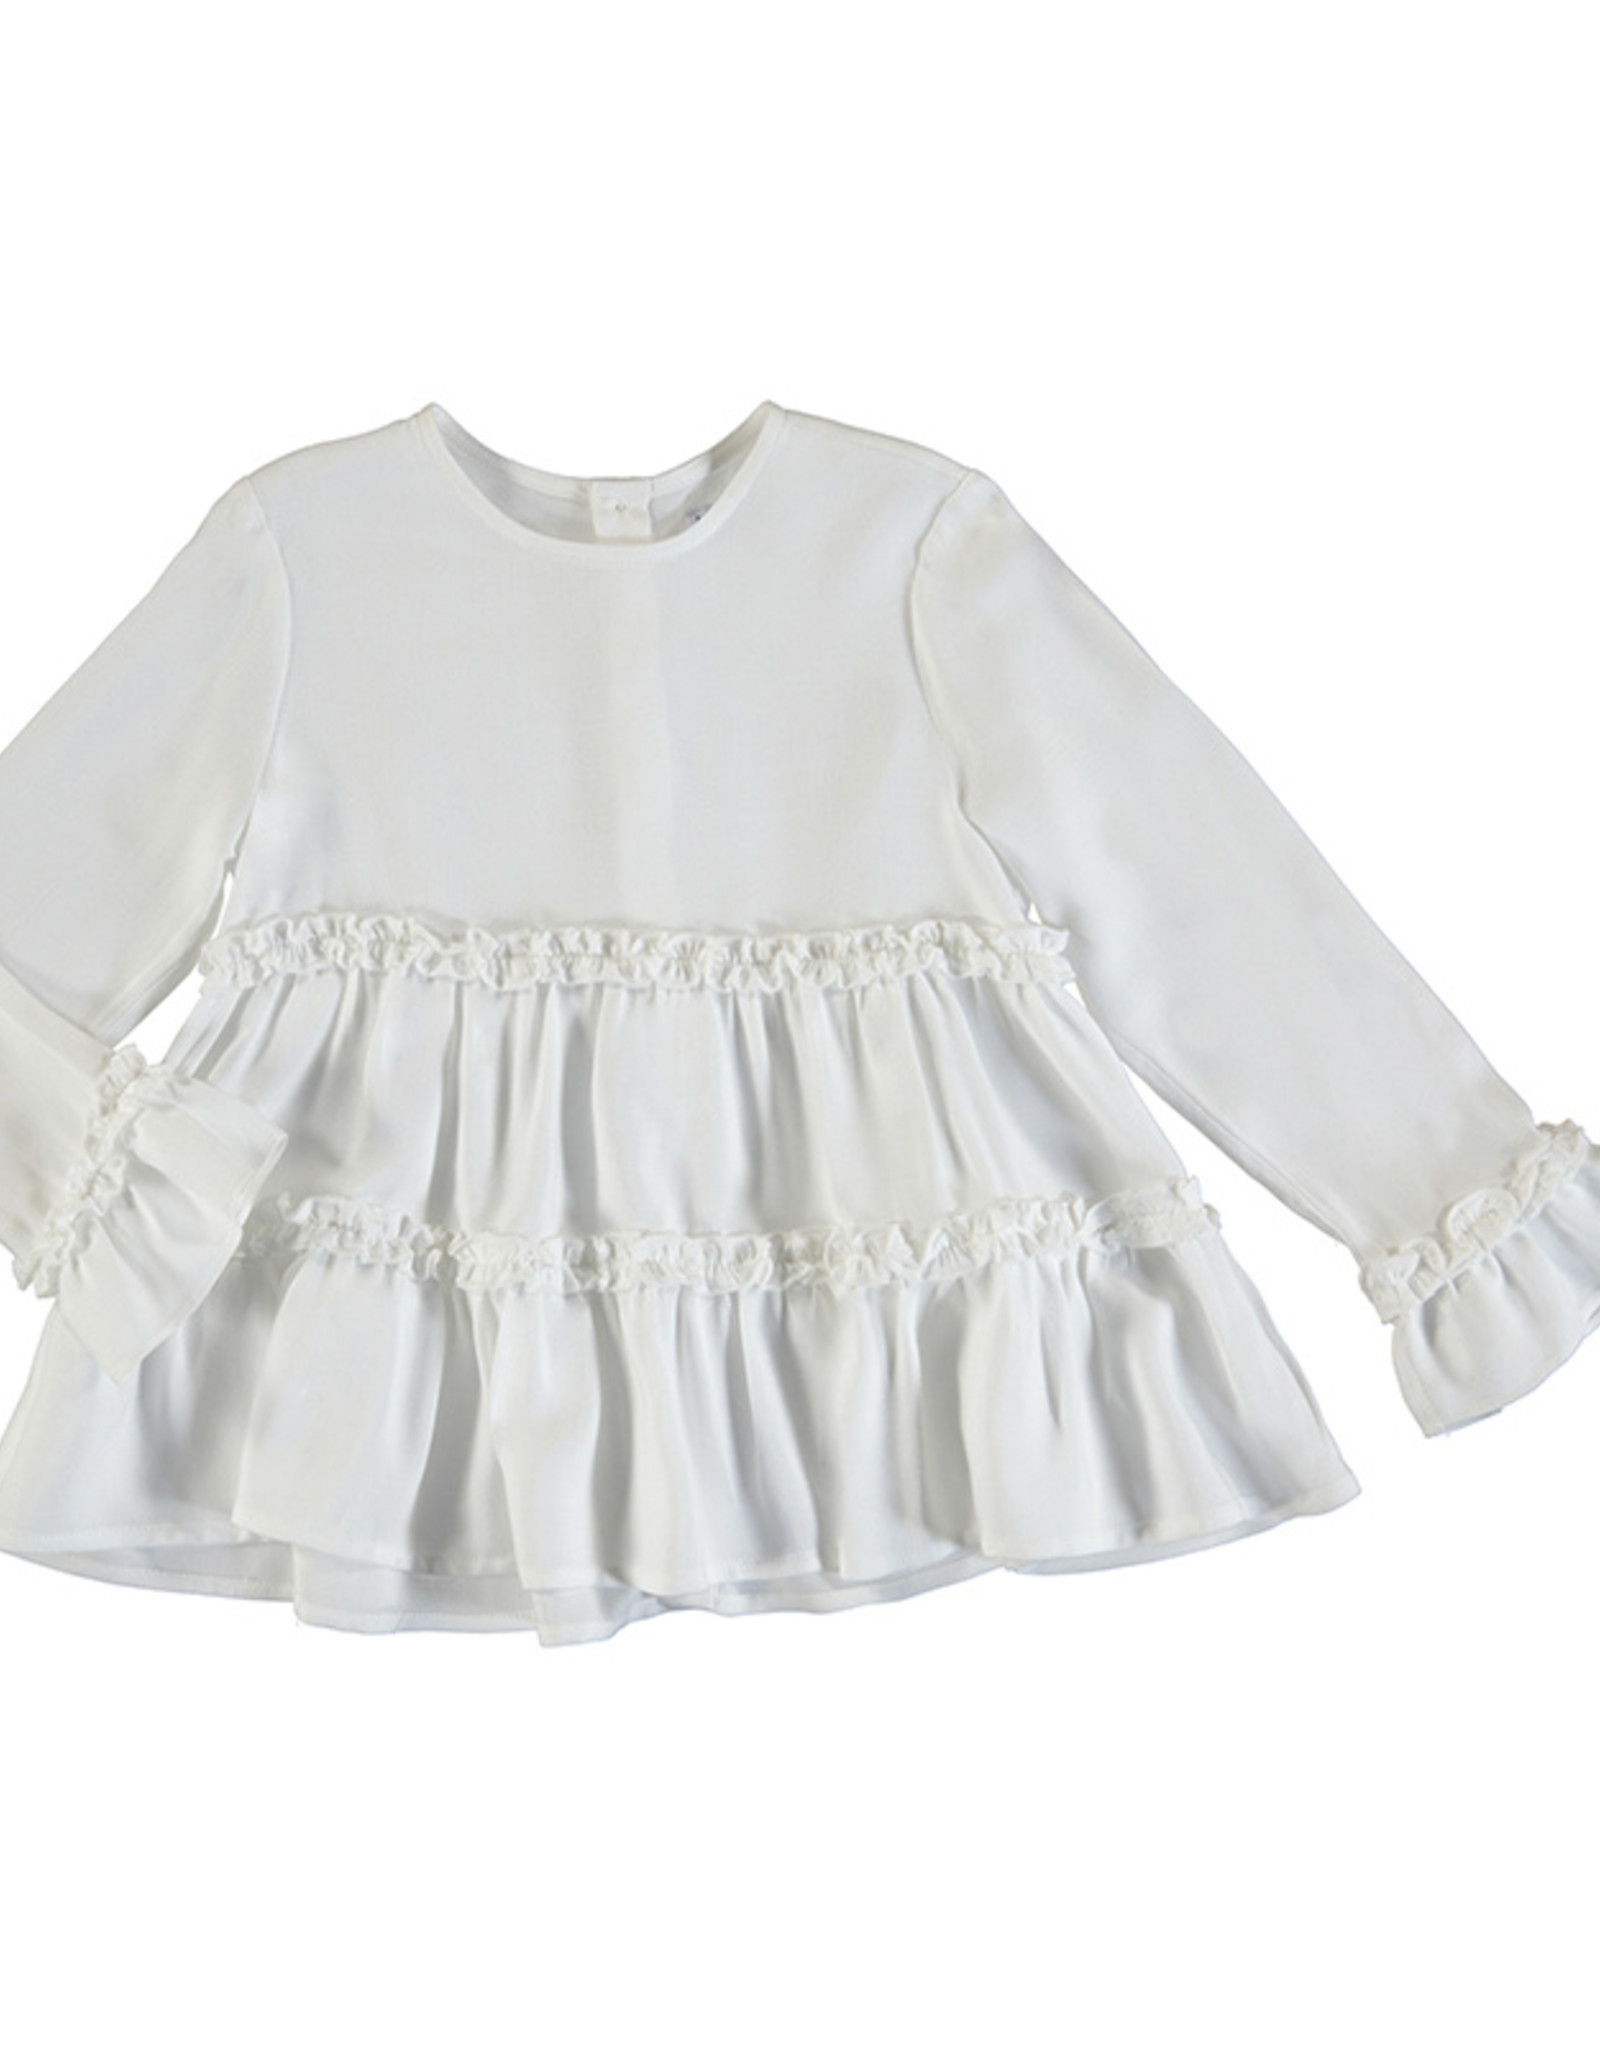 Mayoral Girls White Ruffle Babydoll Blouse